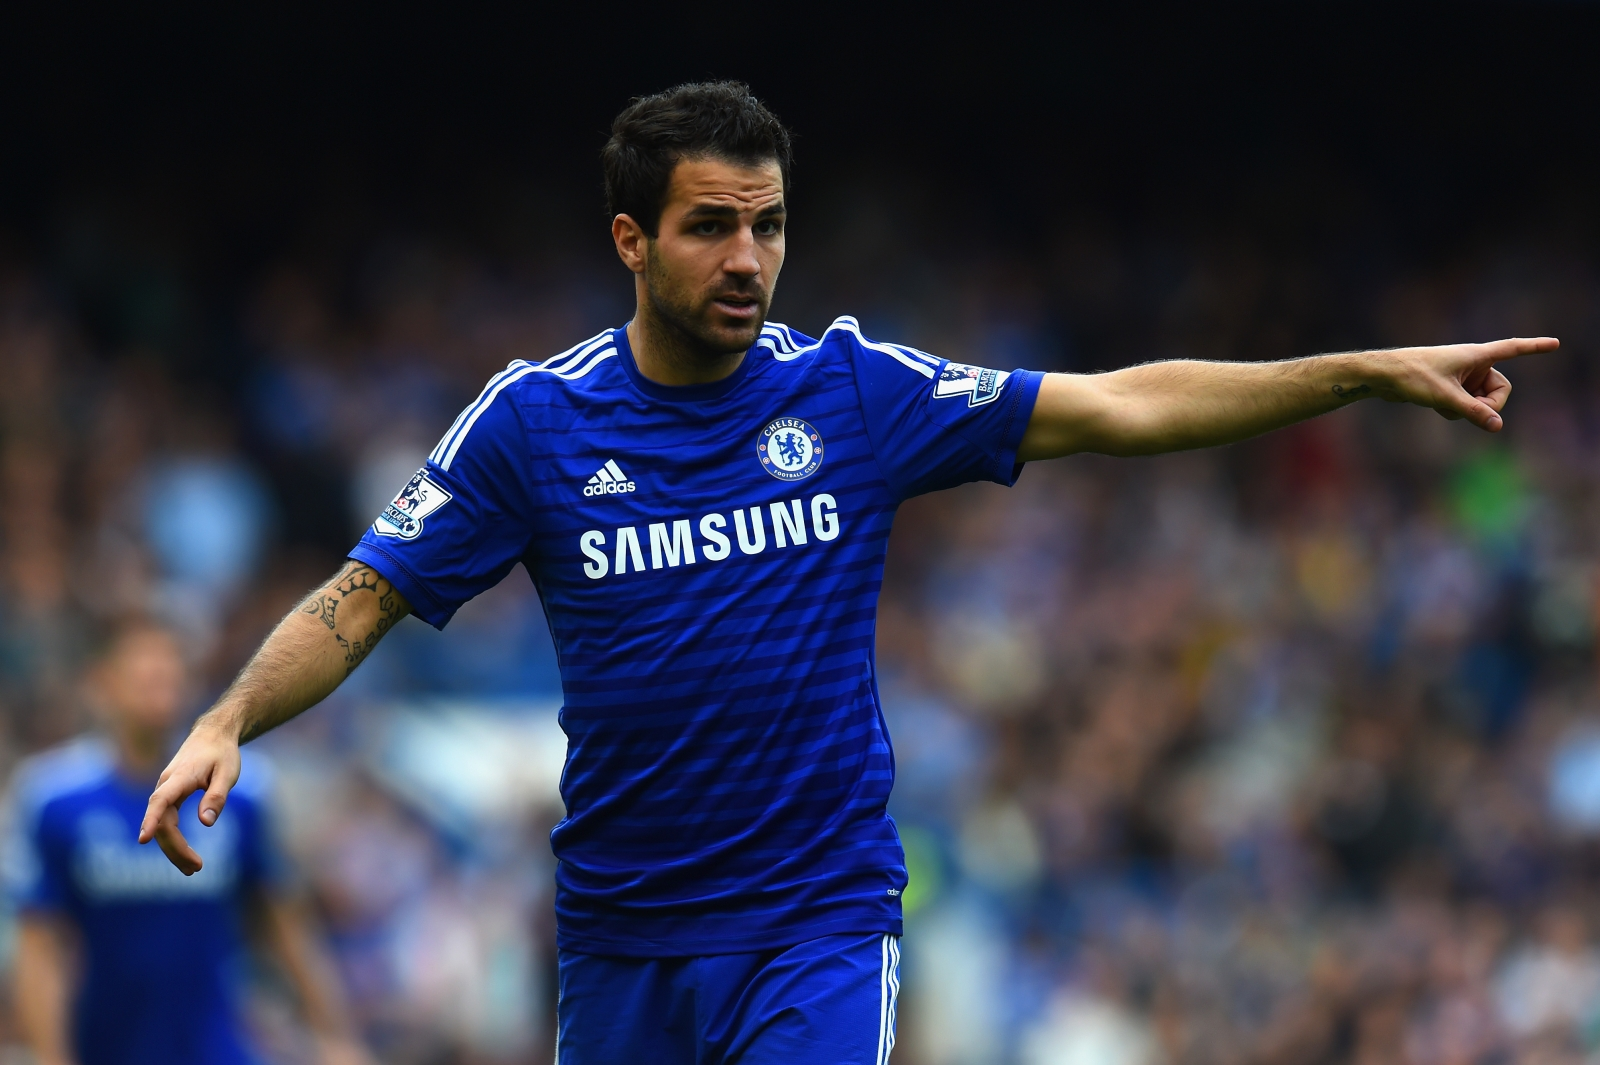 Chelsea Star Cesc Fabregas: \'Happy To Play Number 10 Role